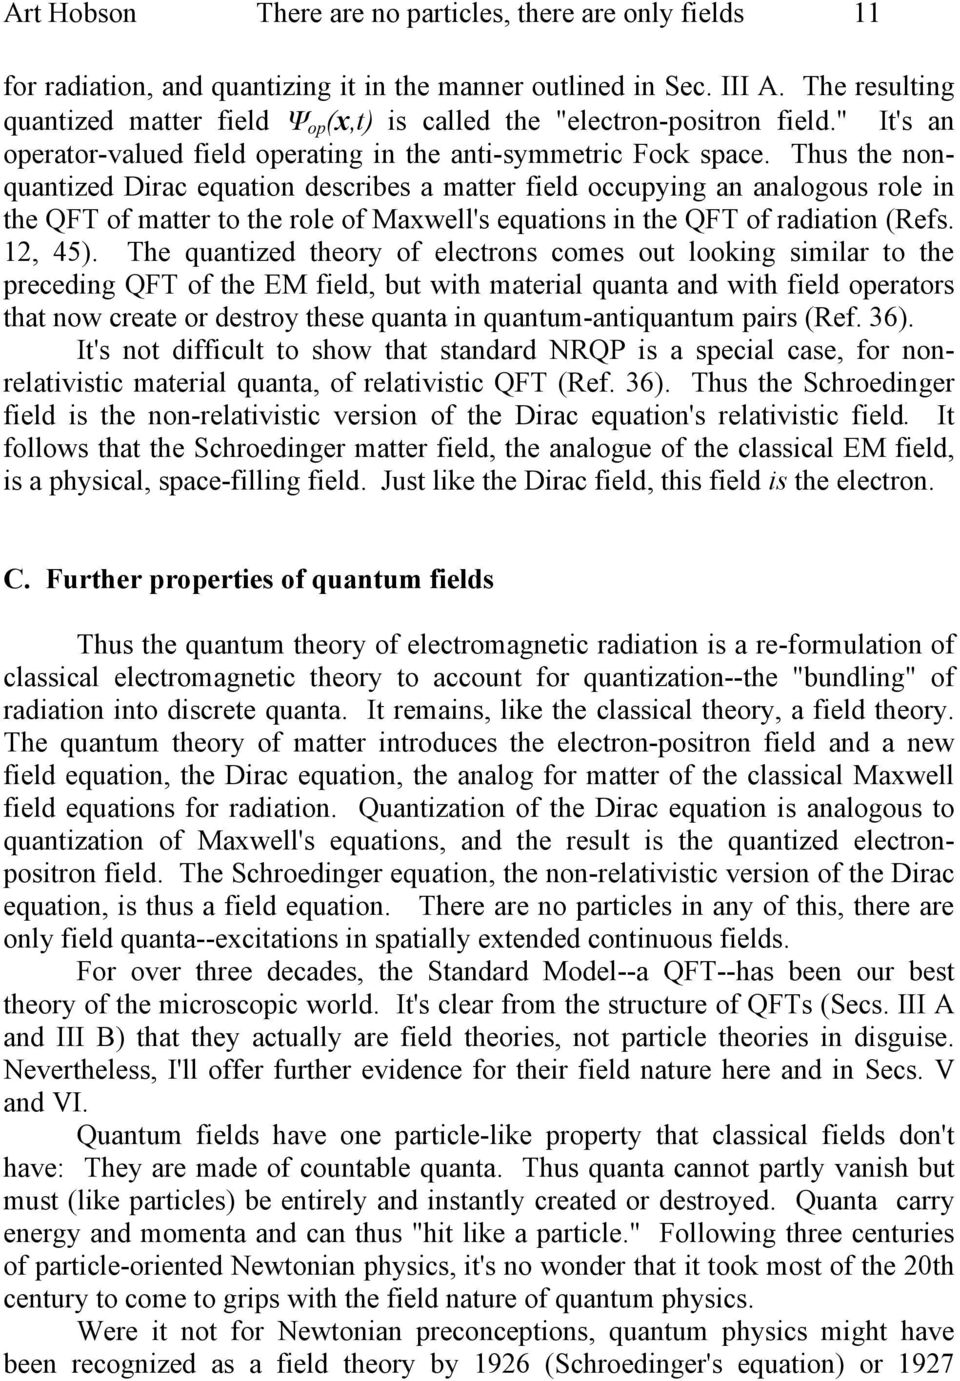 Thus the nonquantized Dirac equation describes a matter field occupying an analogous role in the QFT of matter to the role of Maxwell's equations in the QFT of radiation (Refs. 12, 45).